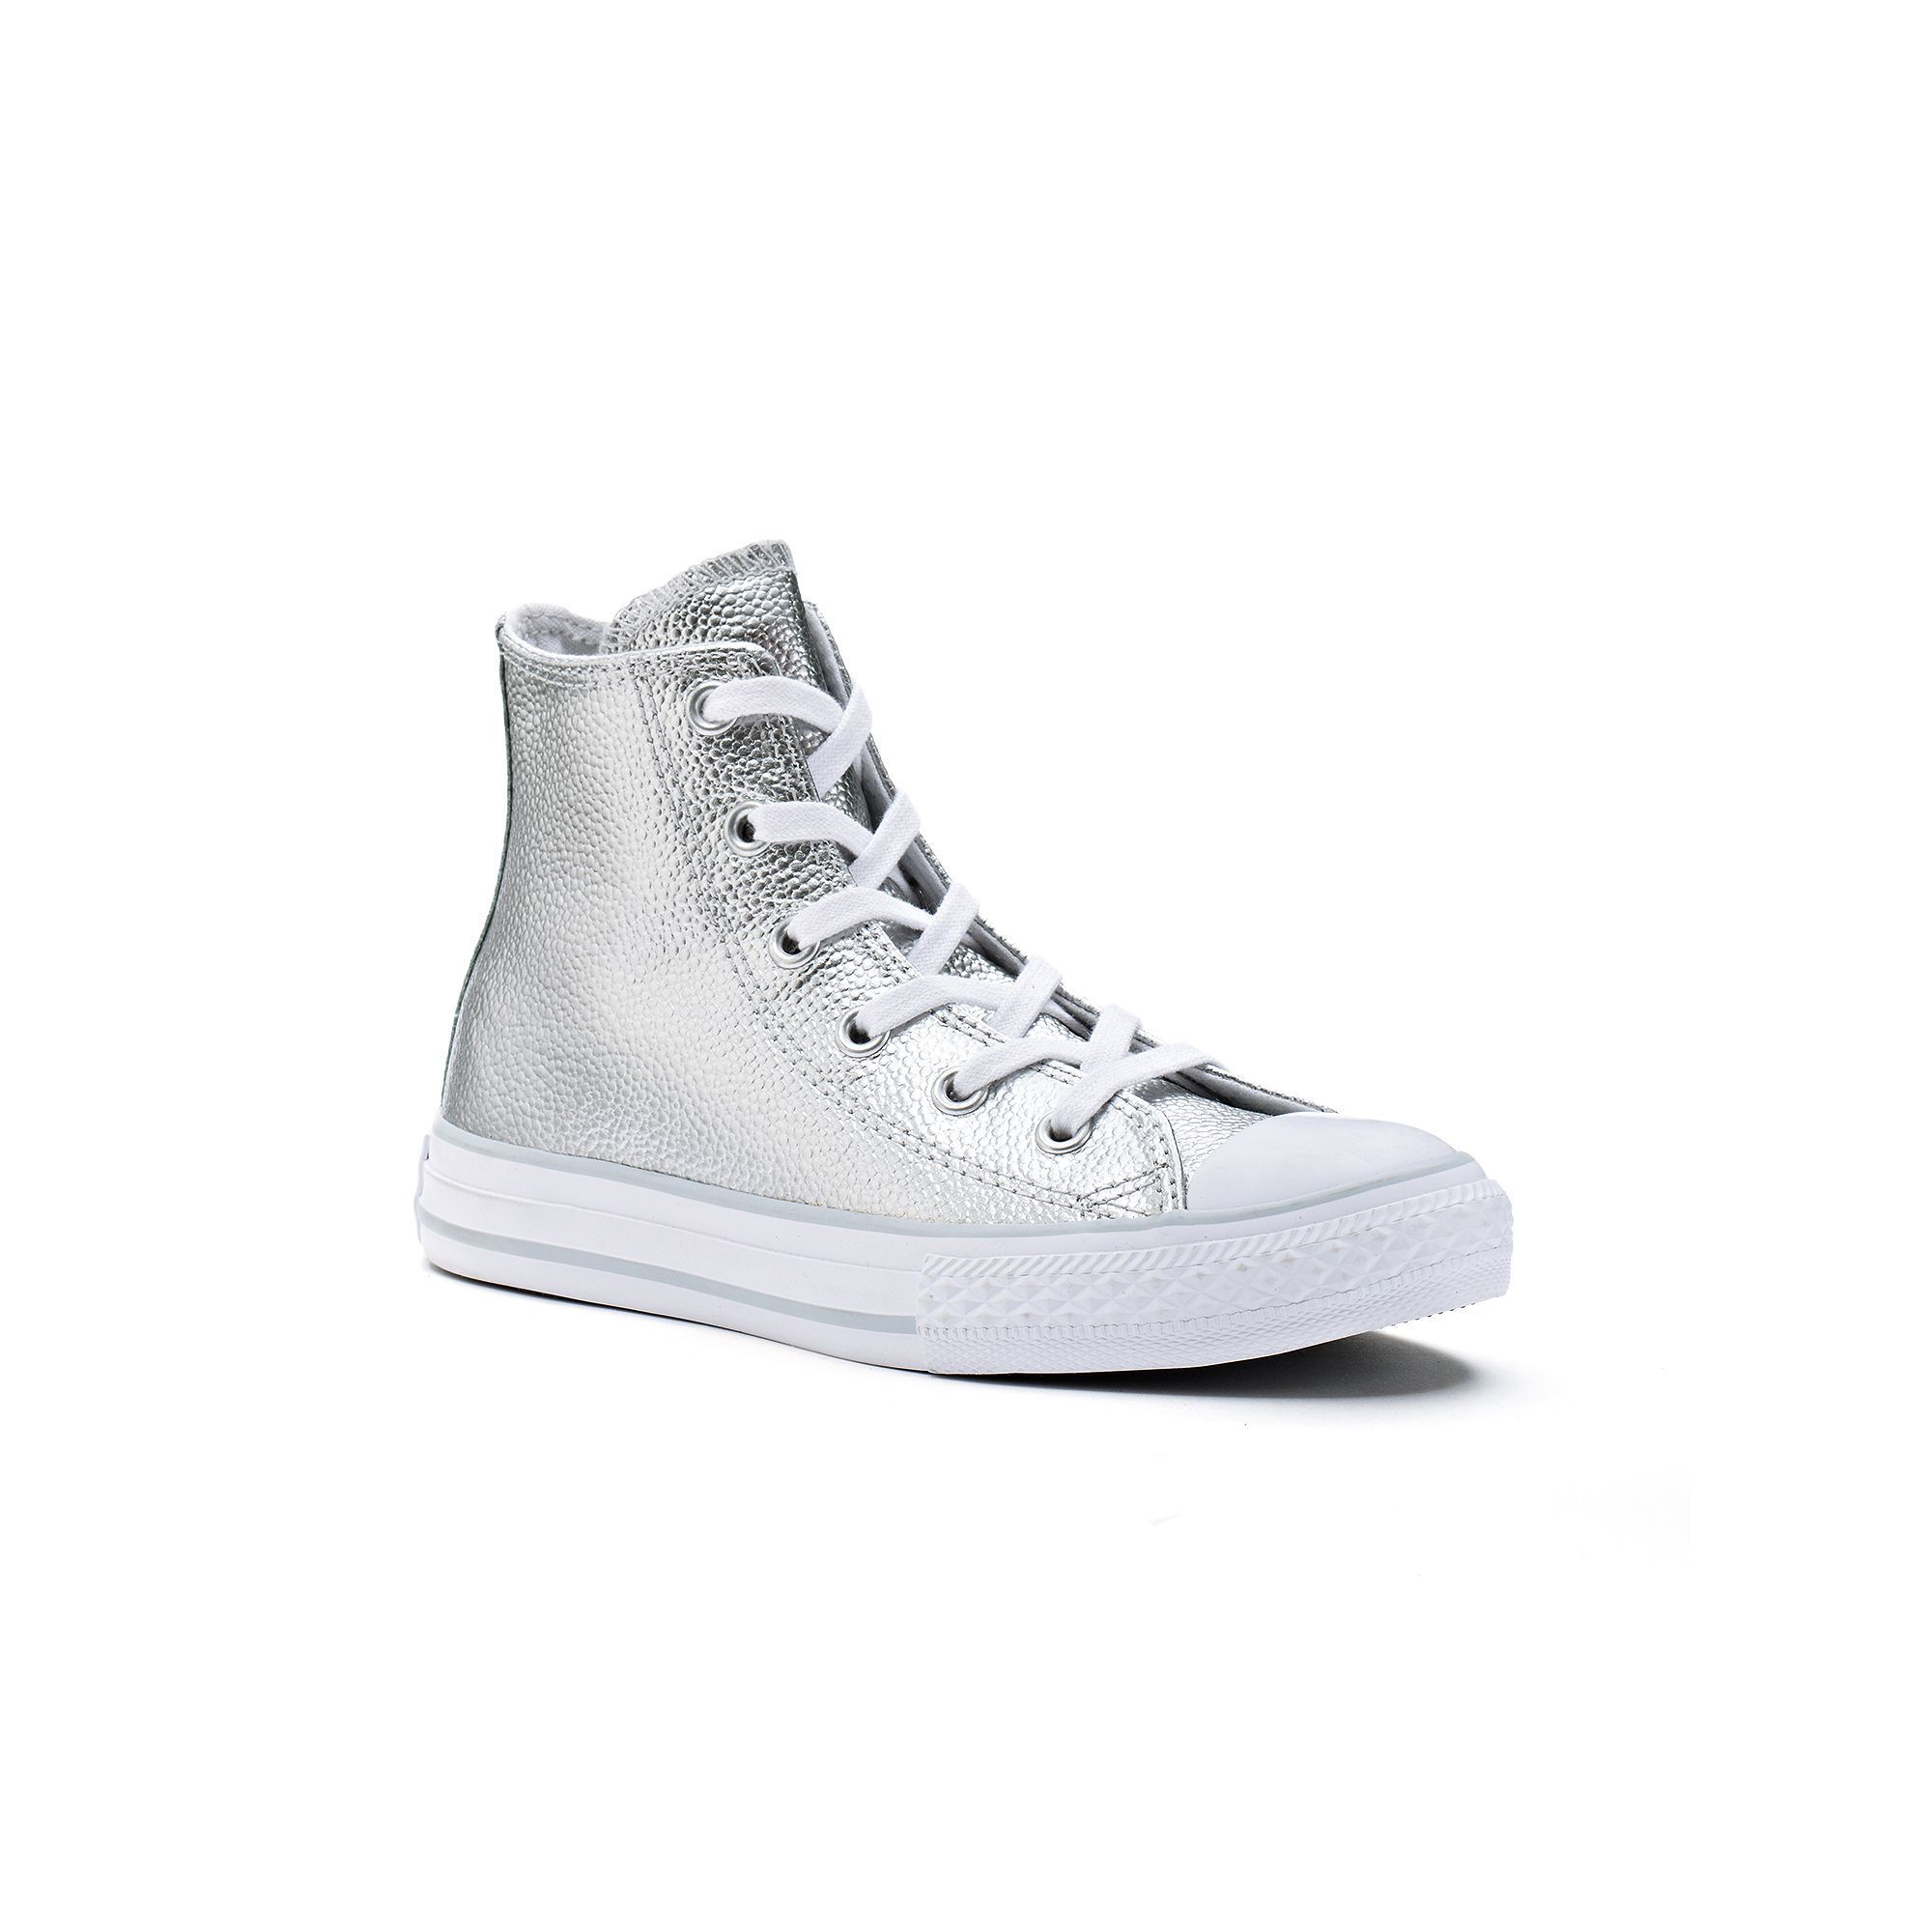 649a7340c7b2 Kid s Converse Chuck Taylor All Star Stingray Leather High-Top Sneakers